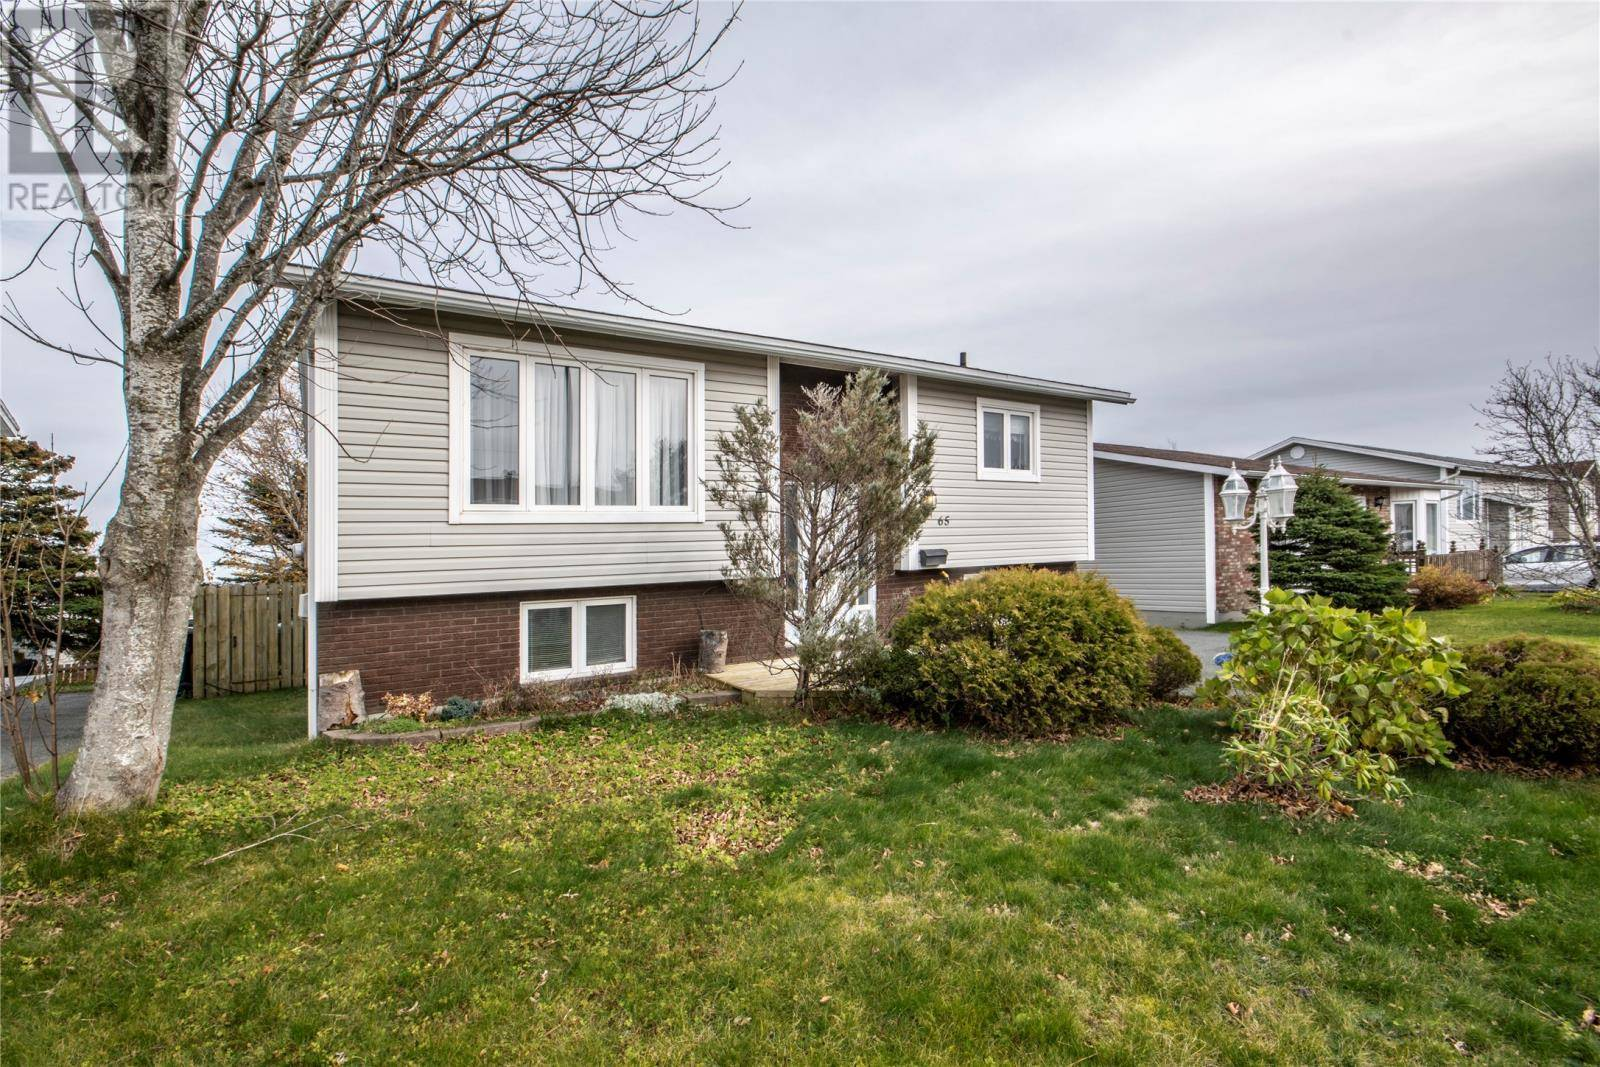 House for sale at 65 Ashford Dr Mount Pearl Newfoundland - MLS: 1207198